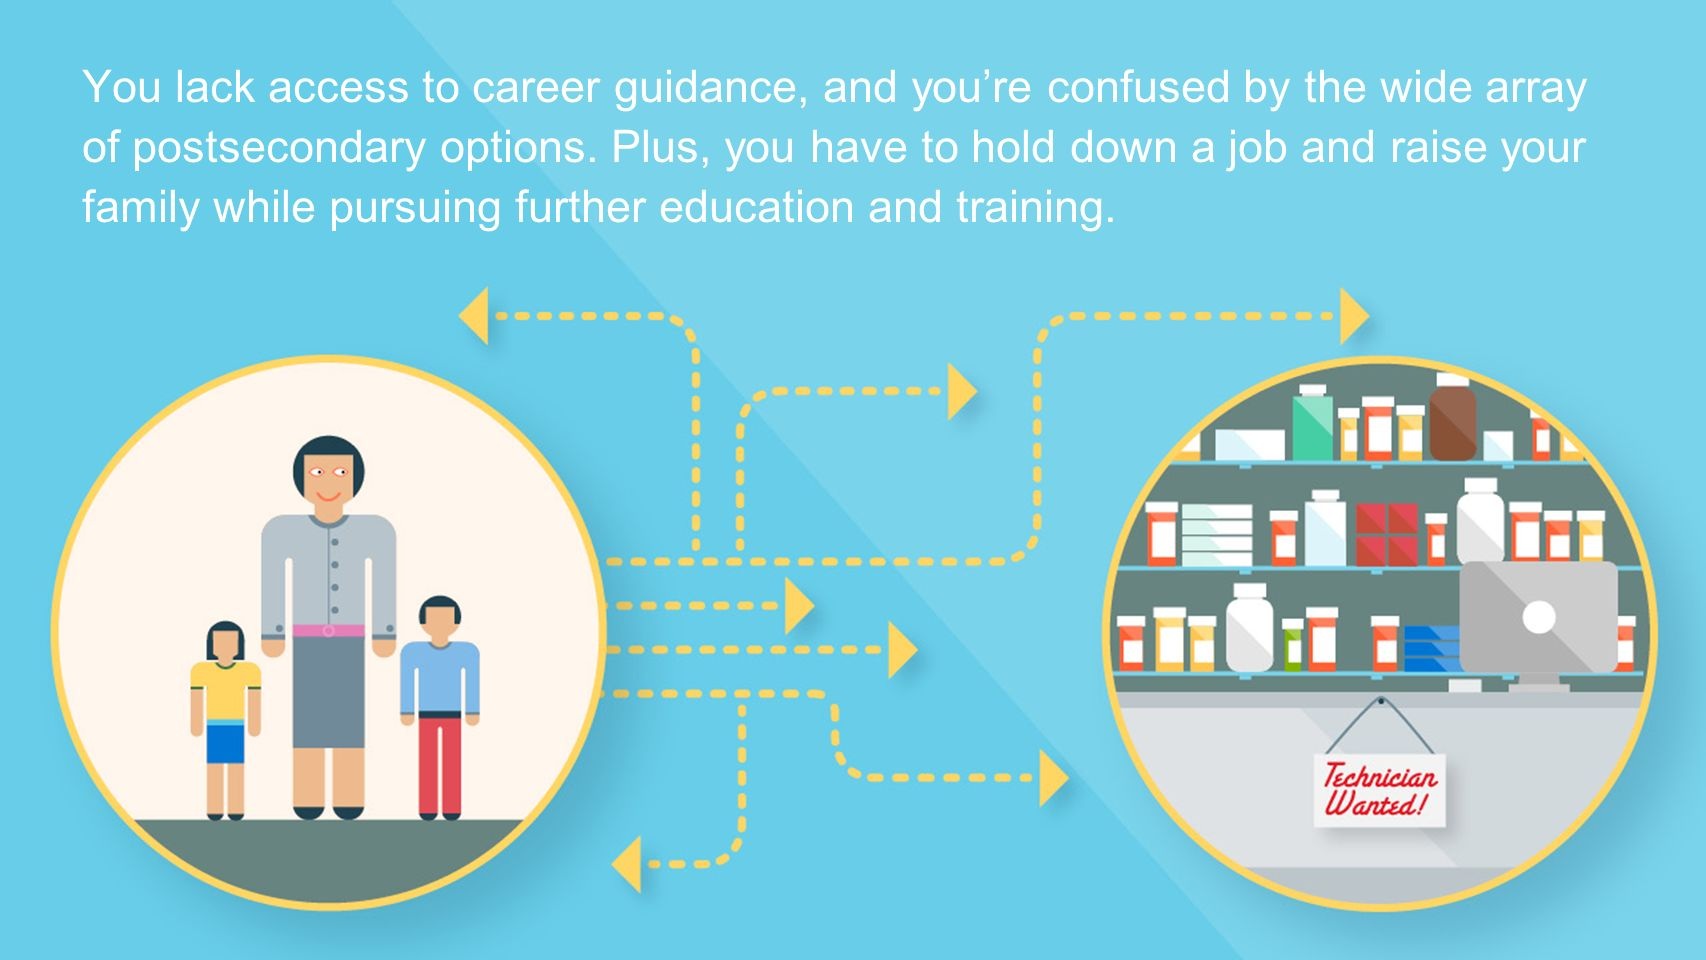 You lack access to career guidance, and you're confused by the wide array of postsecondary options.